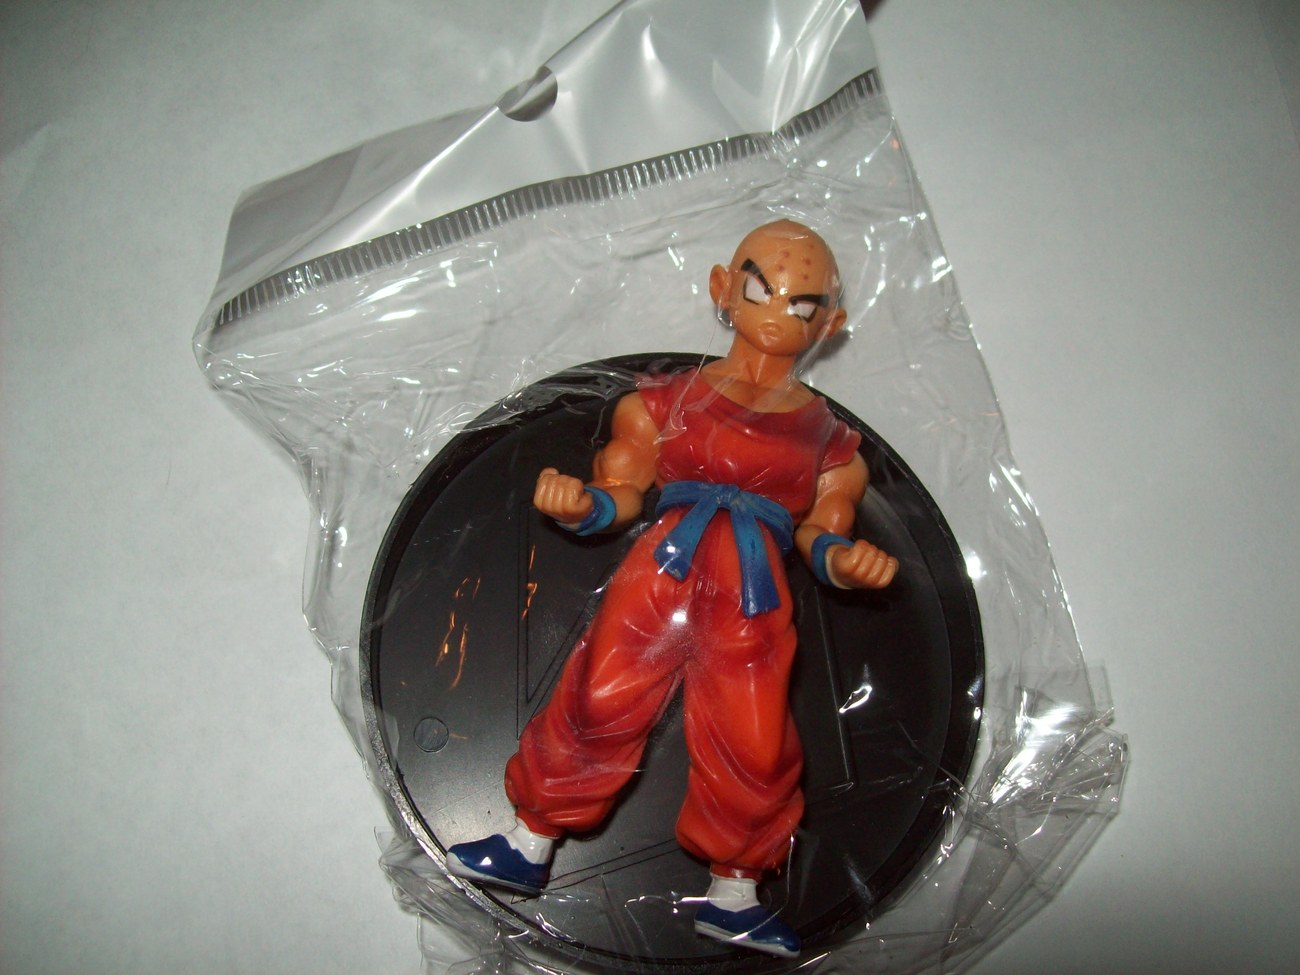 krillin dragonball z figure brand new in bag 3.5&quot; w/ stand